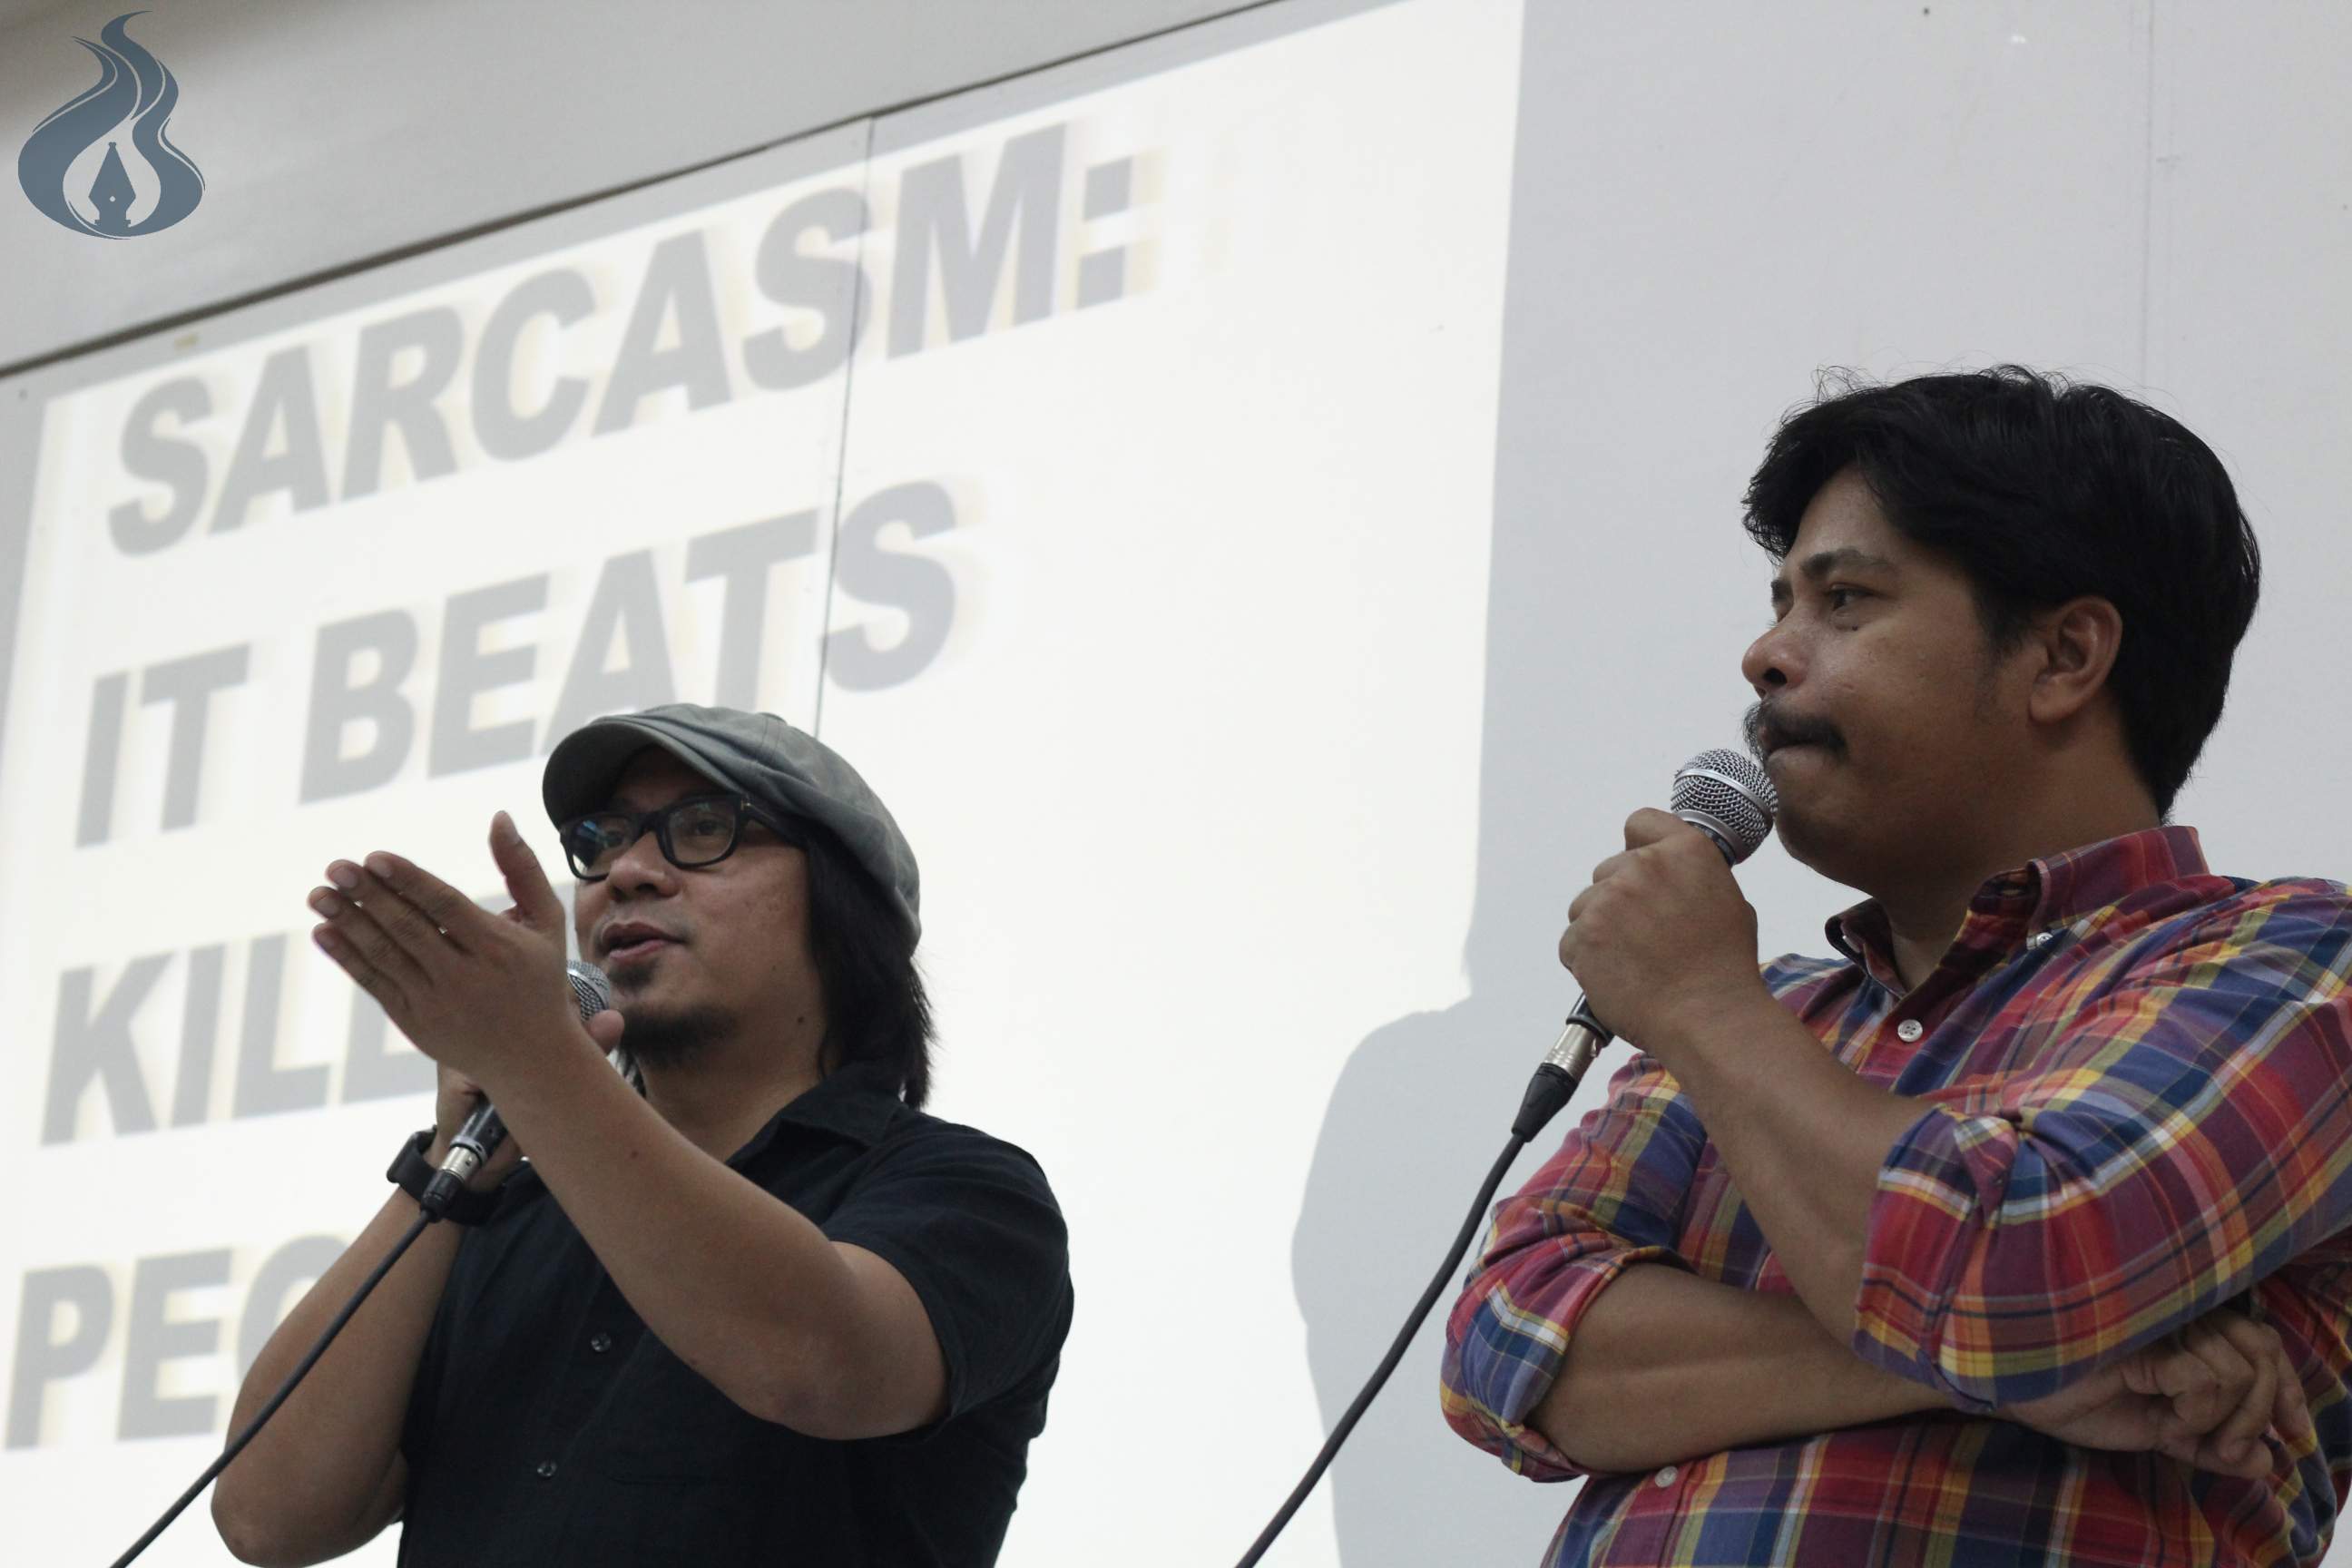 Political satire is tool for awareness, say De Veyra, Sabayton